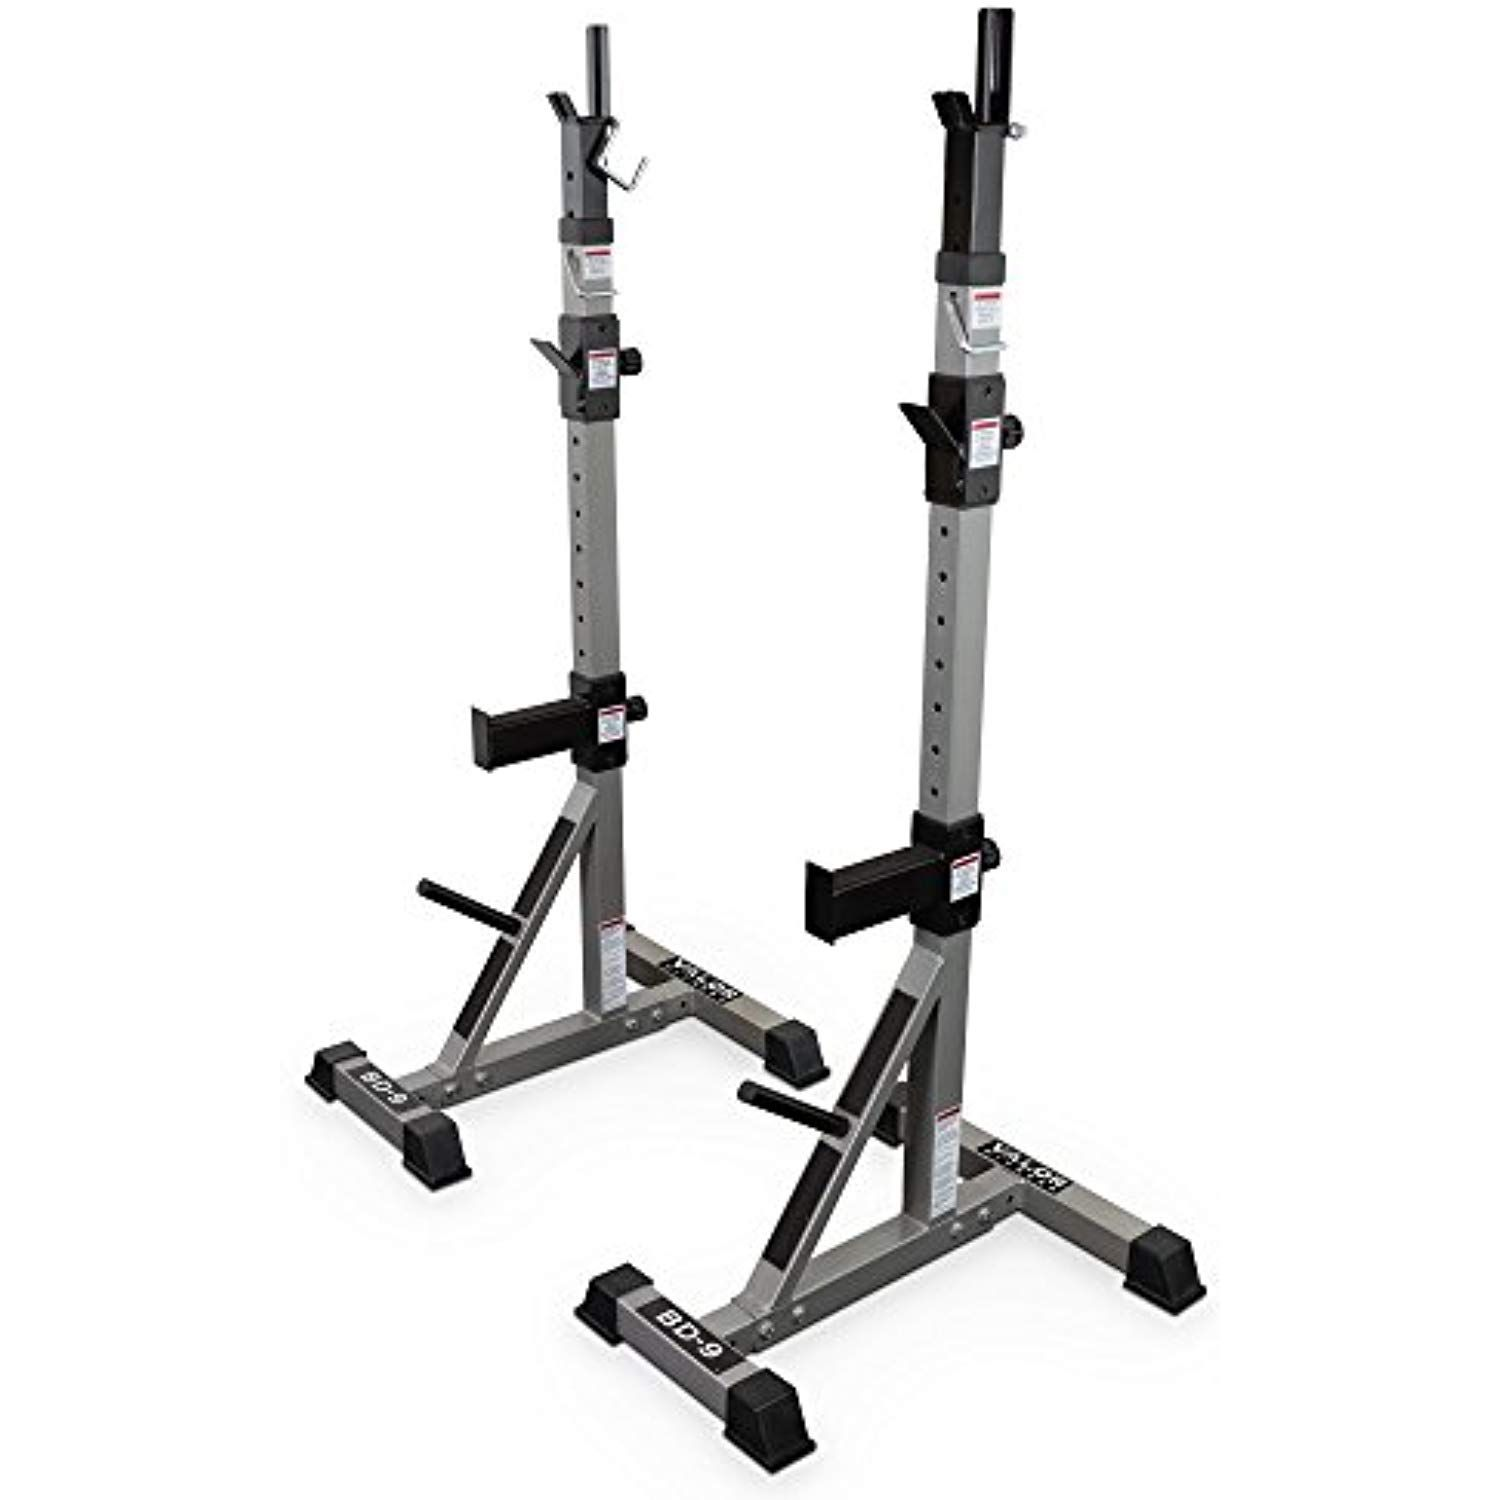 Valor fitness bd 9 power squat stand ** want to know more click on